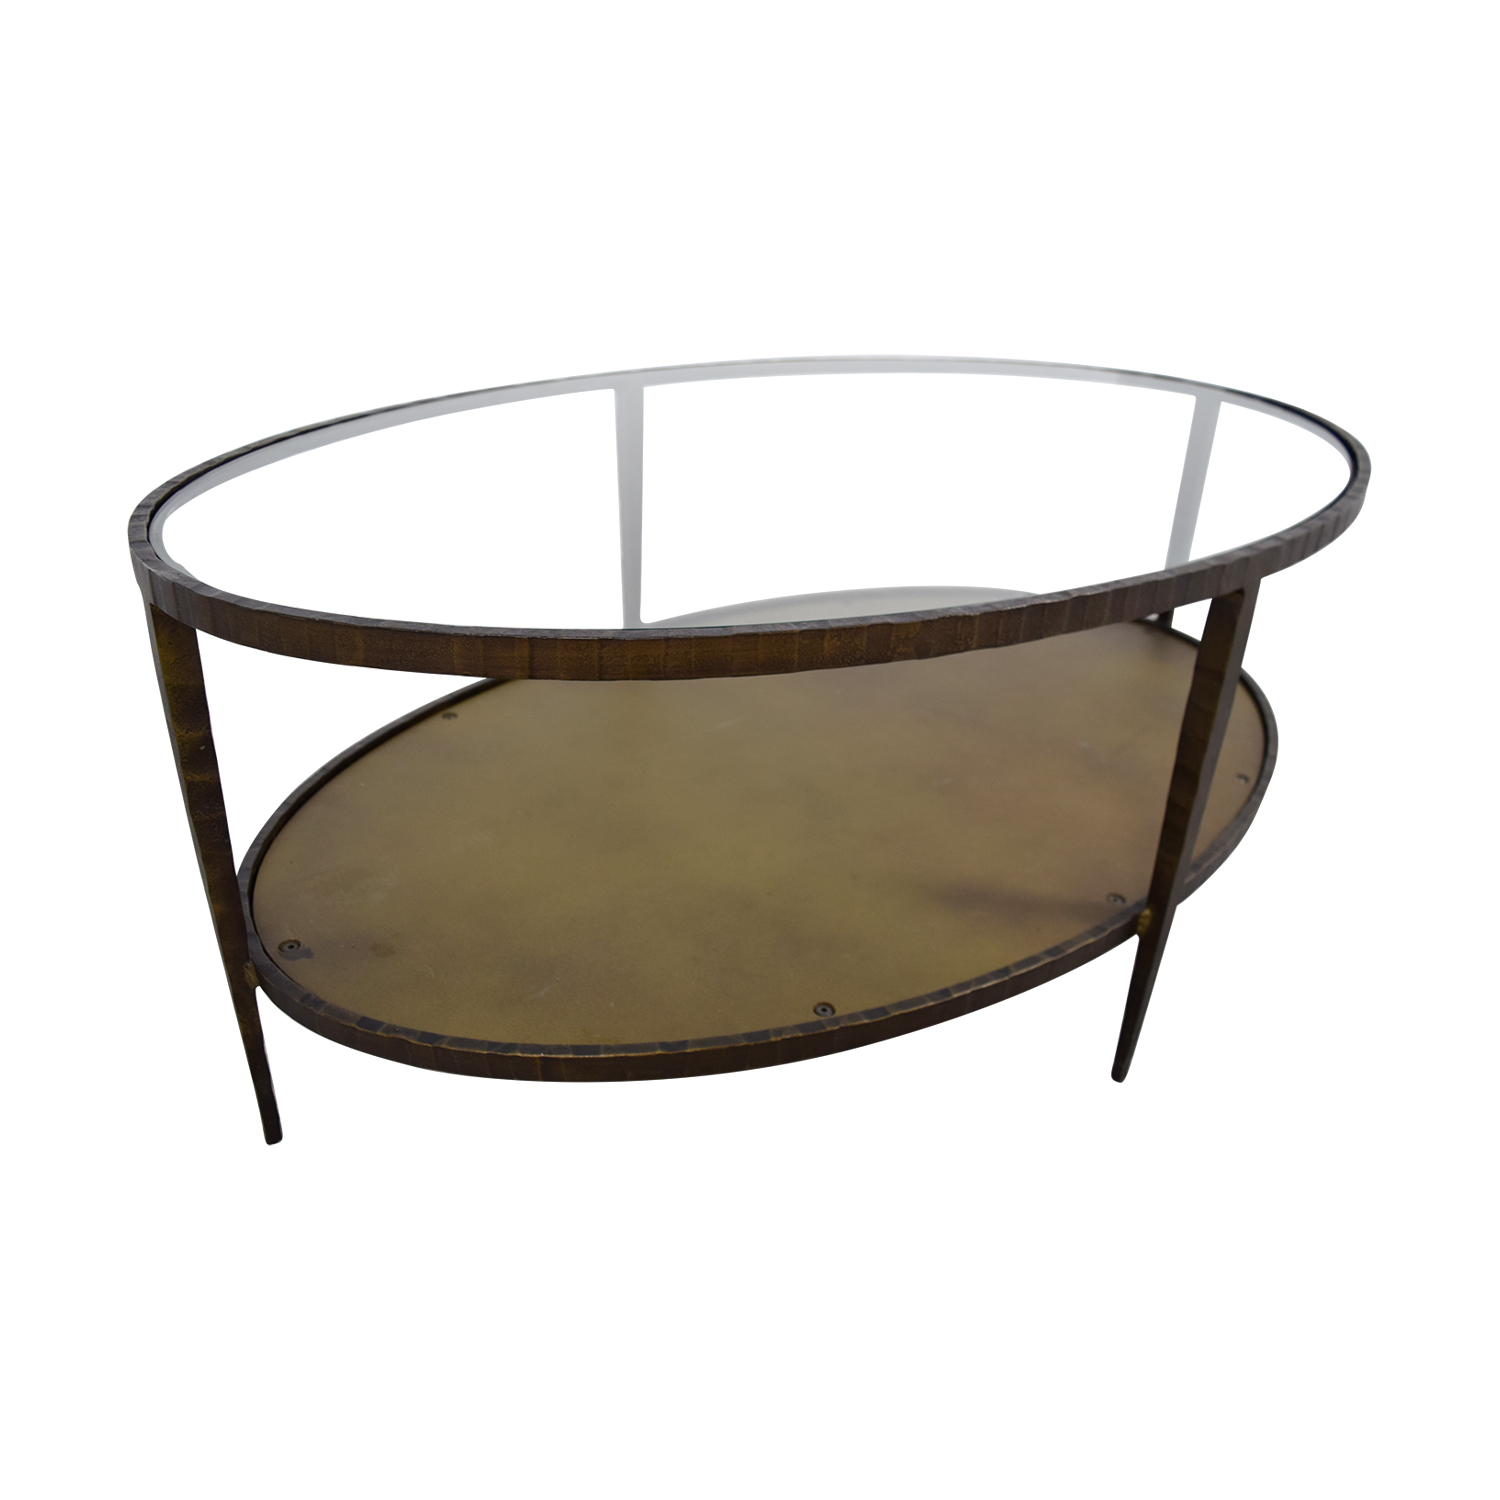 Crate Barrel Clairemont Oval Coffee Table